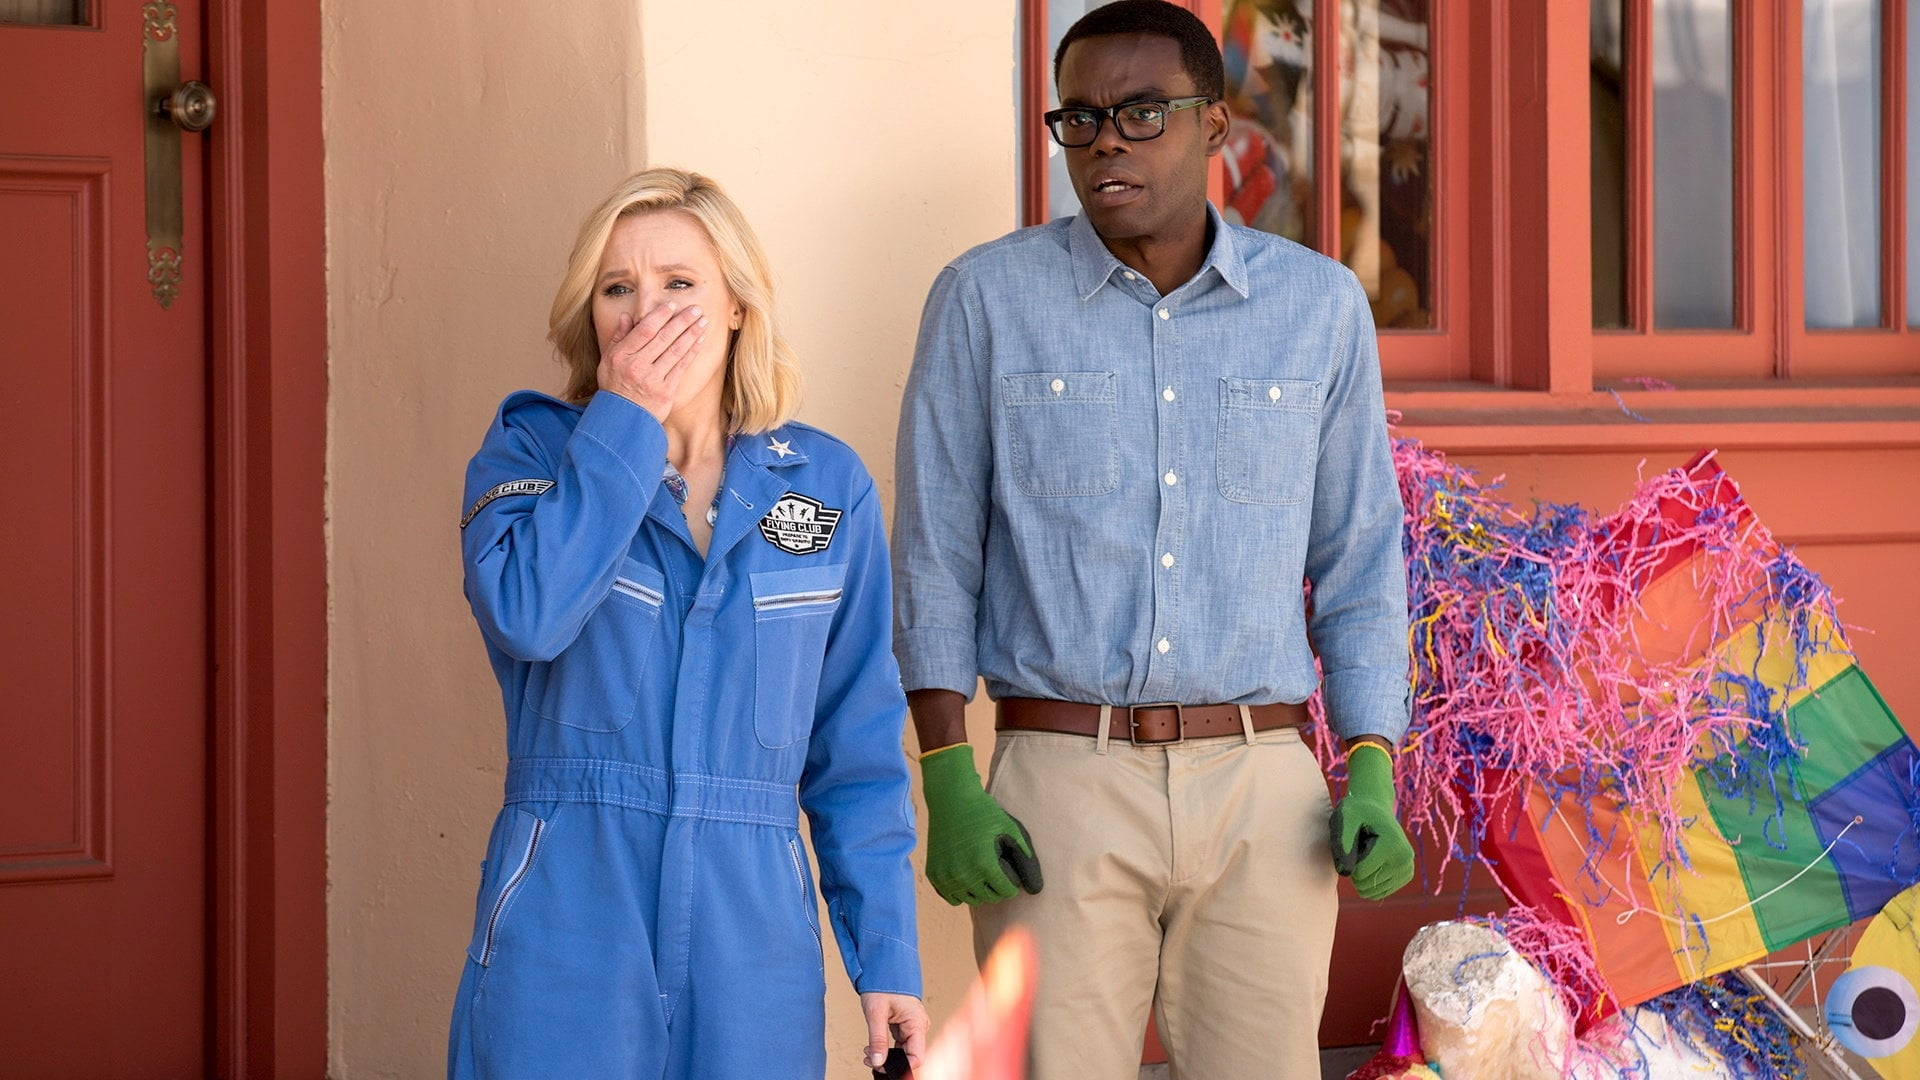 The Good Place - Season 1 Episode 2 : Flying